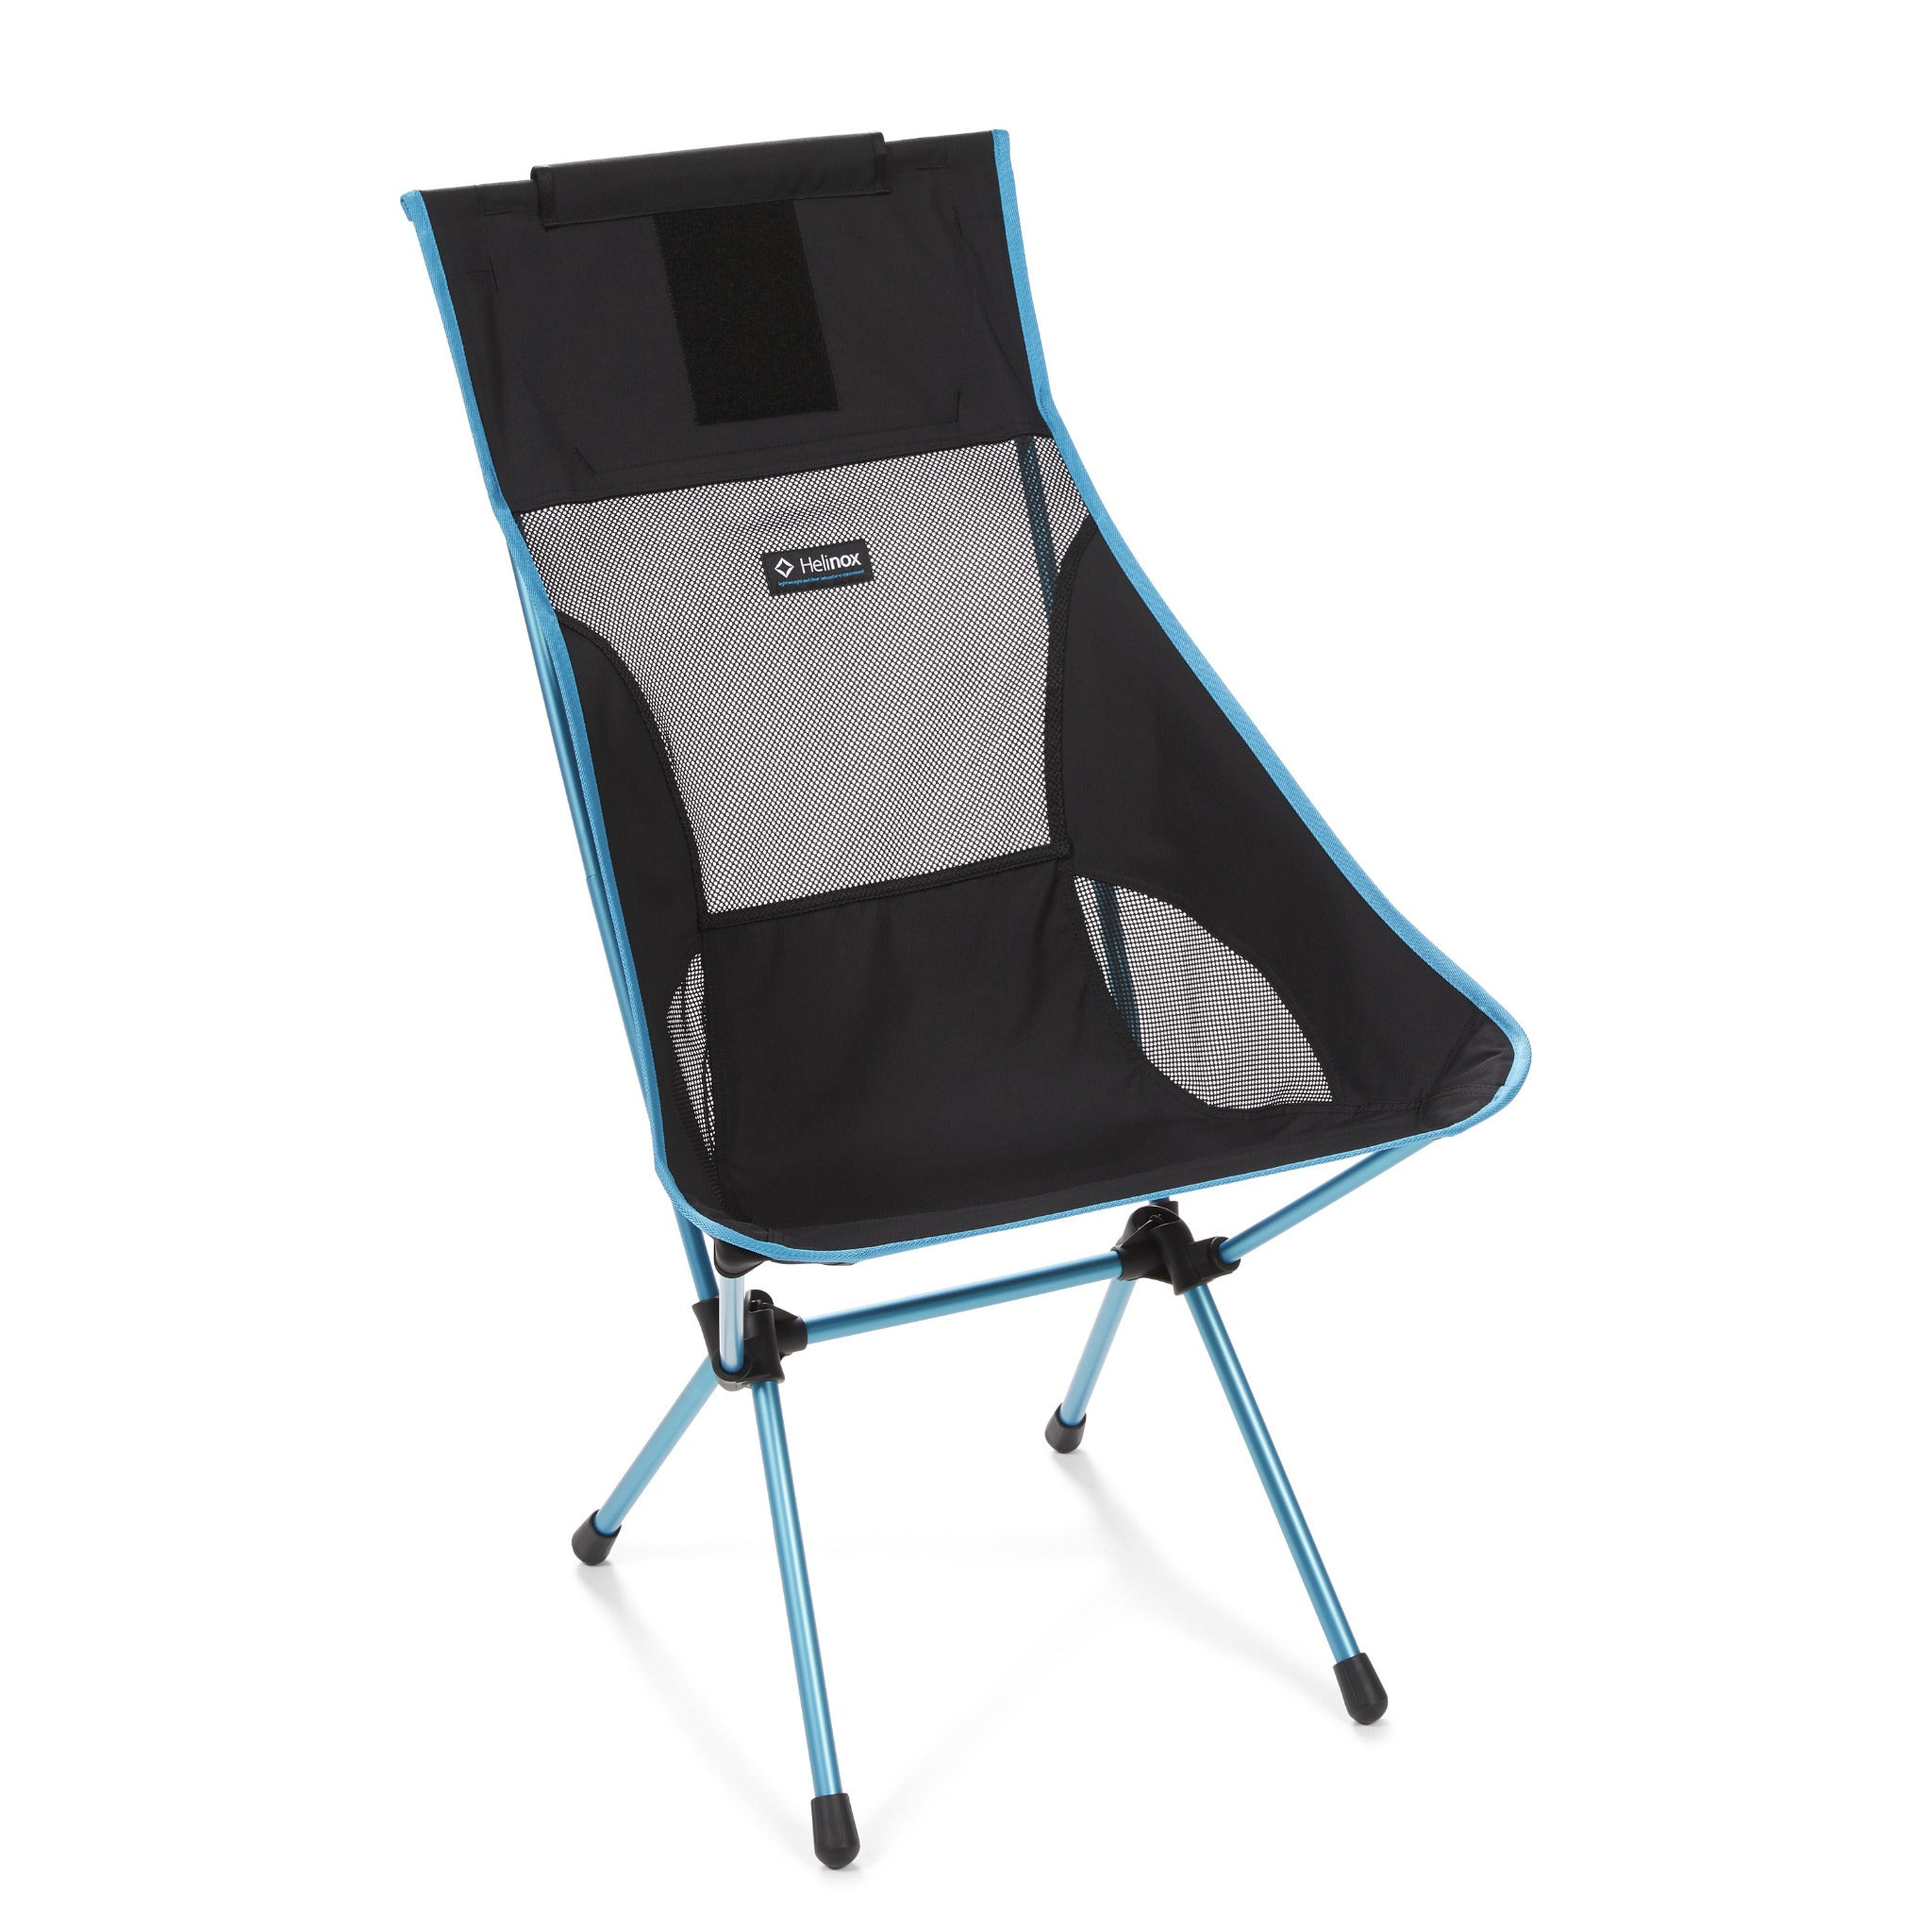 2-pack ** FREE SHIPPING ** NFL High Back Chairs